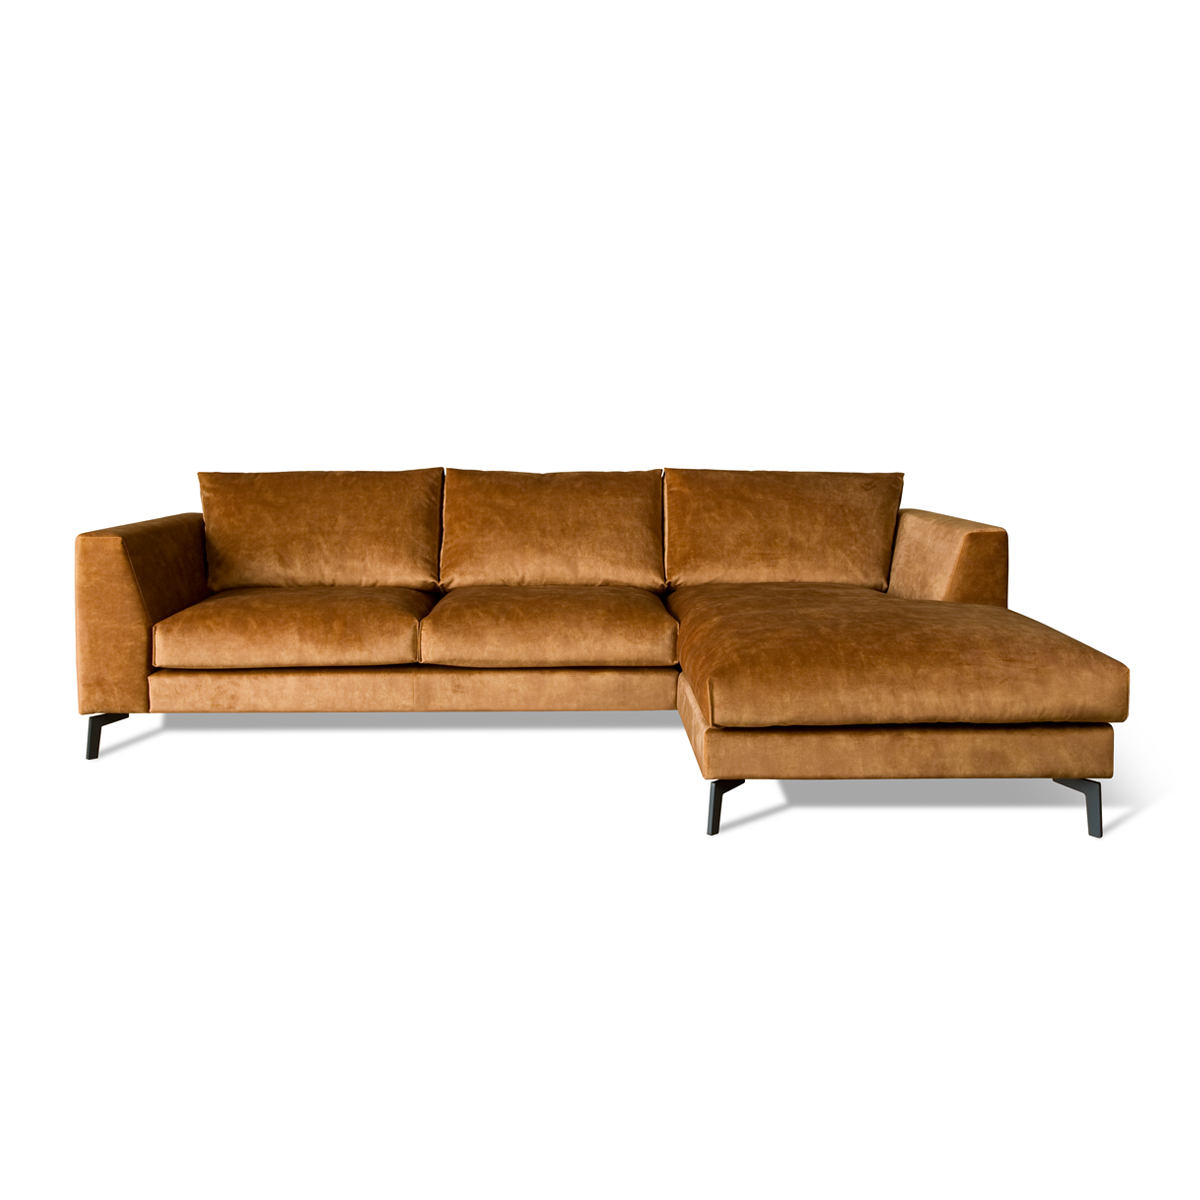 Fluwelen bank chaise longue